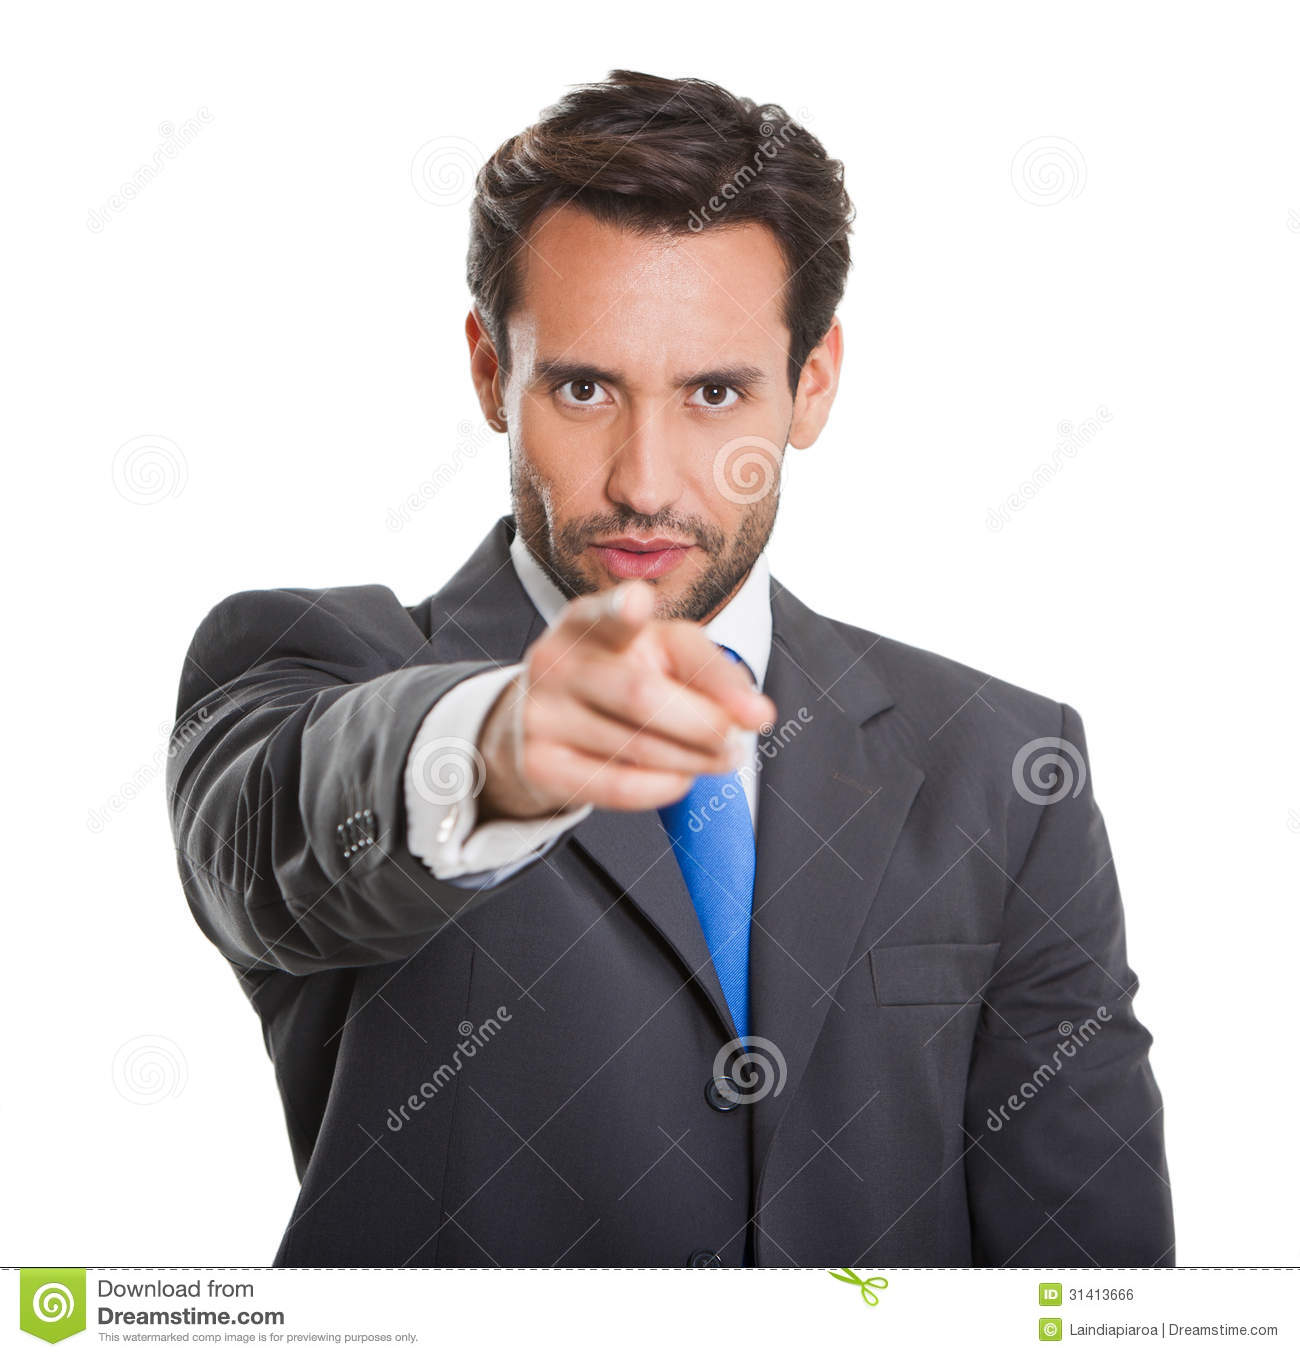 business-man-pointing-to-camera-his-fing